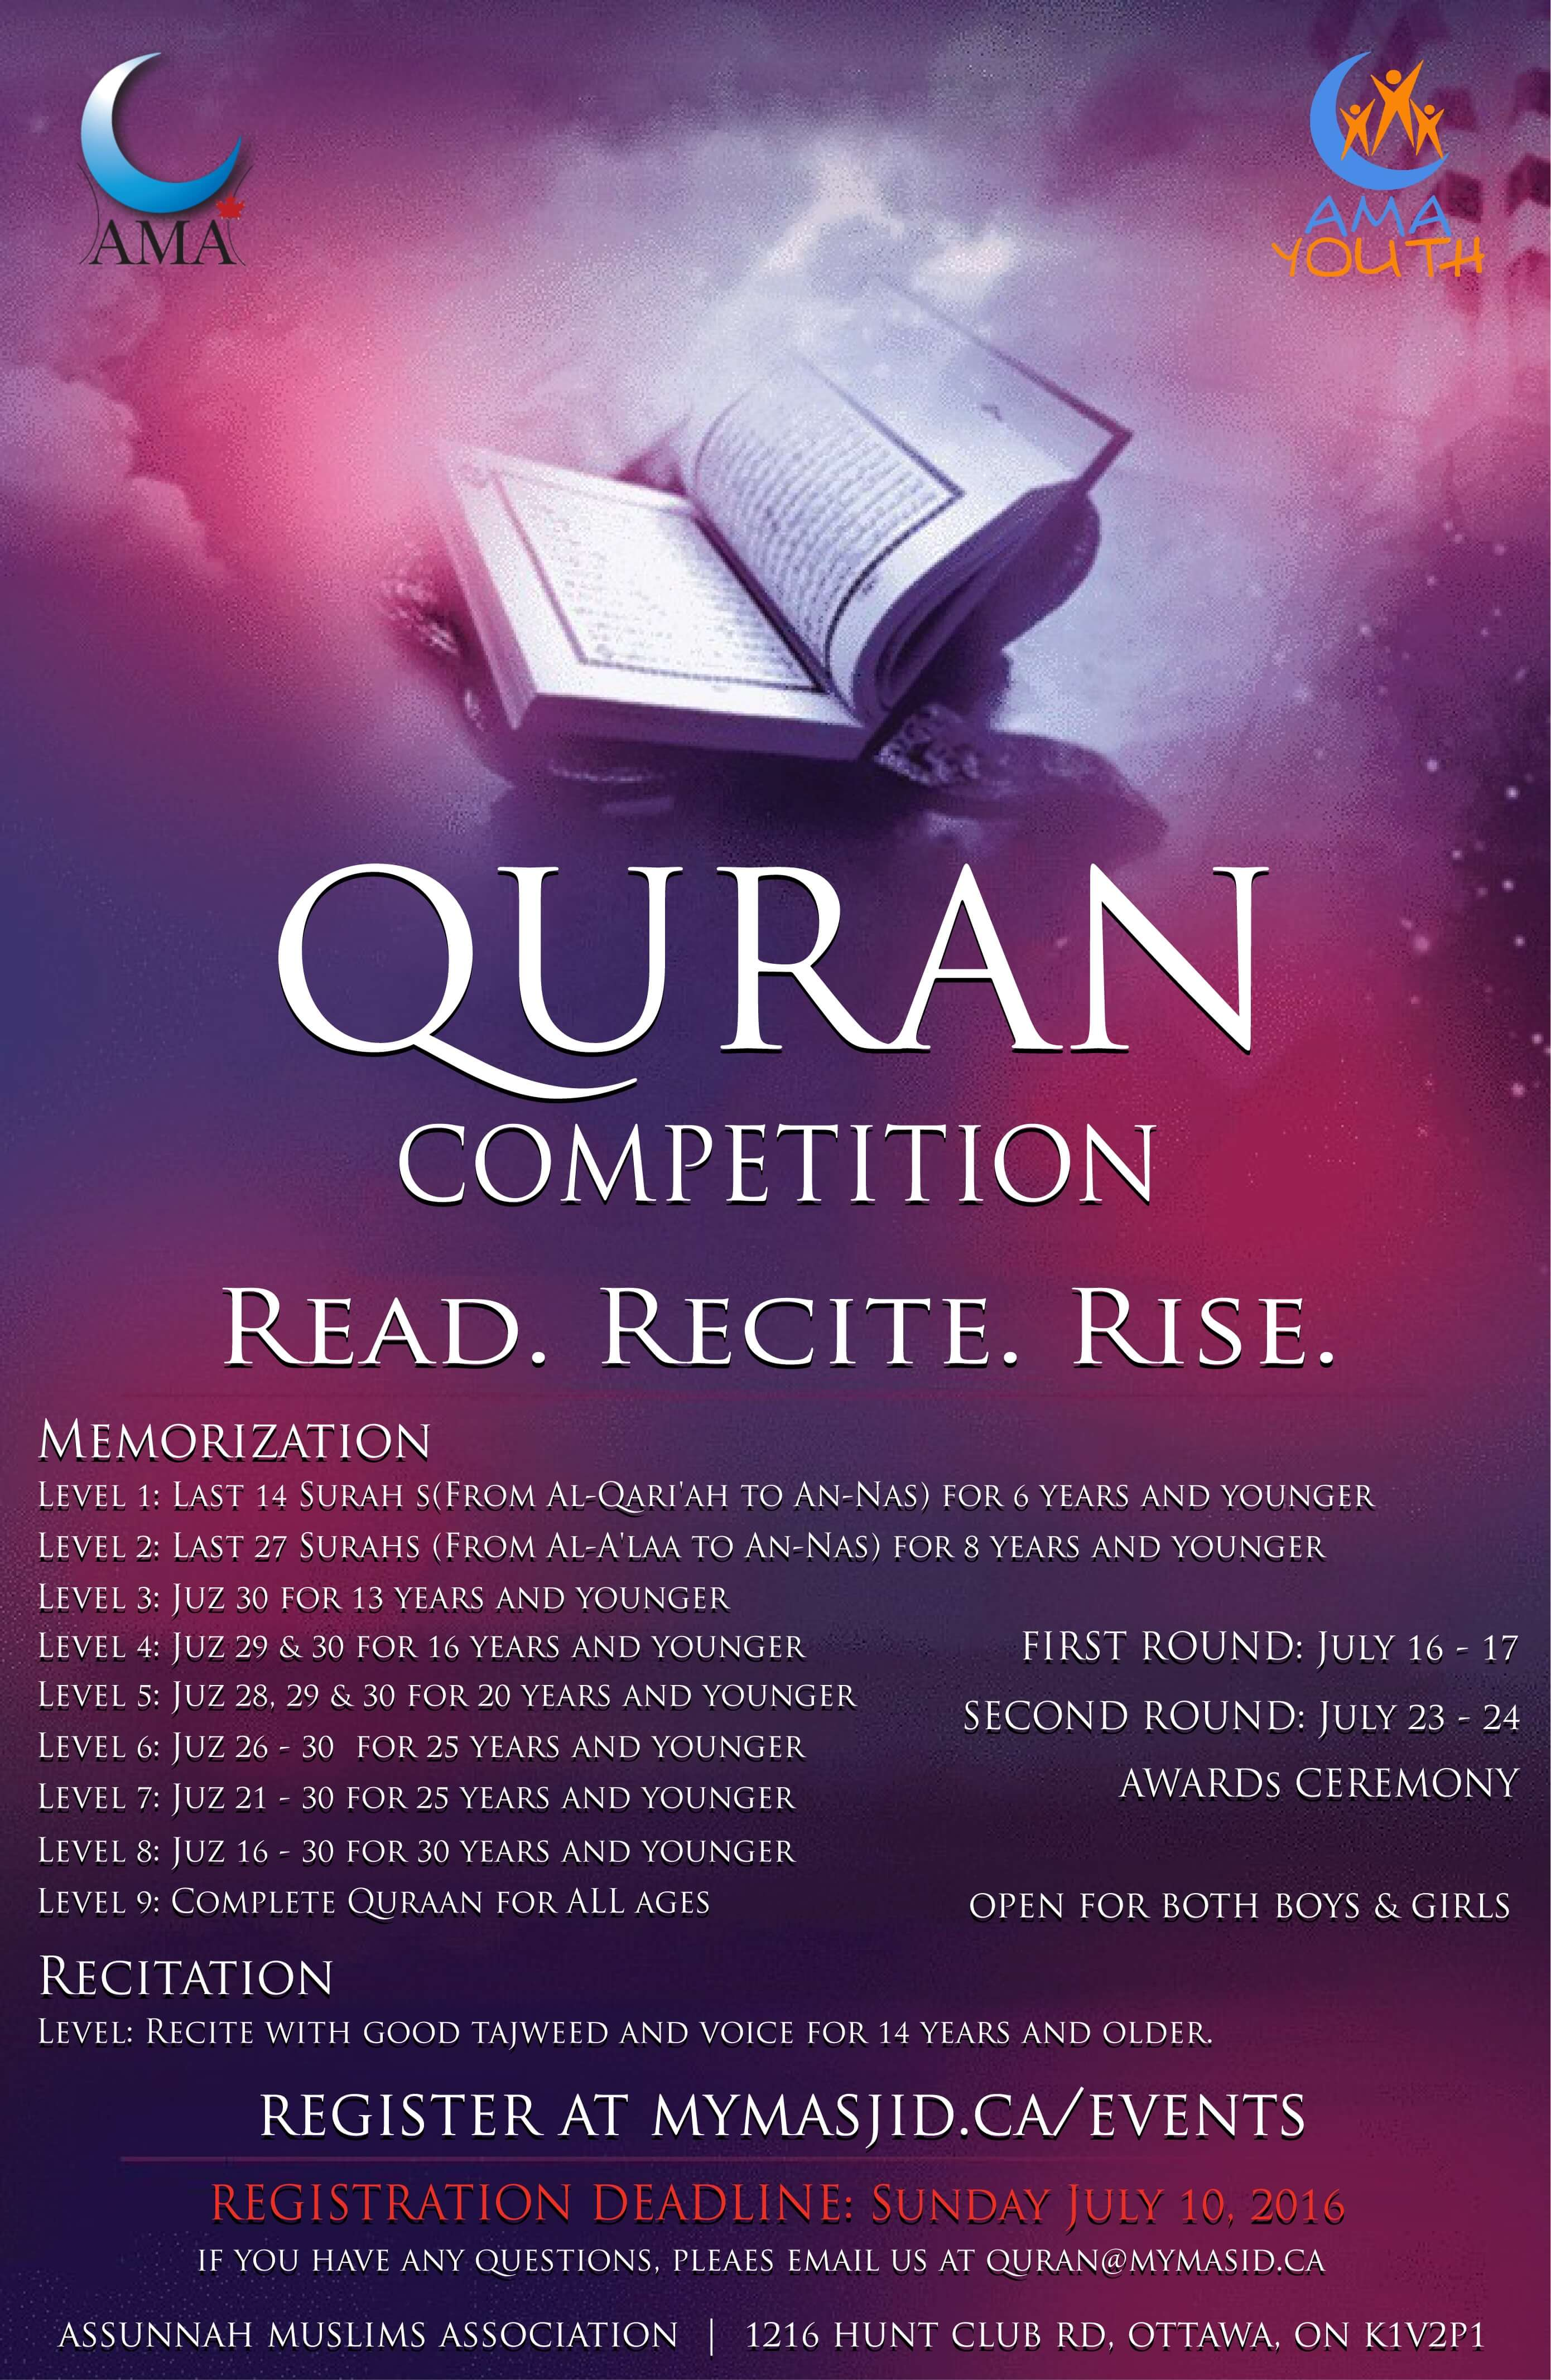 [Deadline] Register for the Annual Qur'an Competition ...